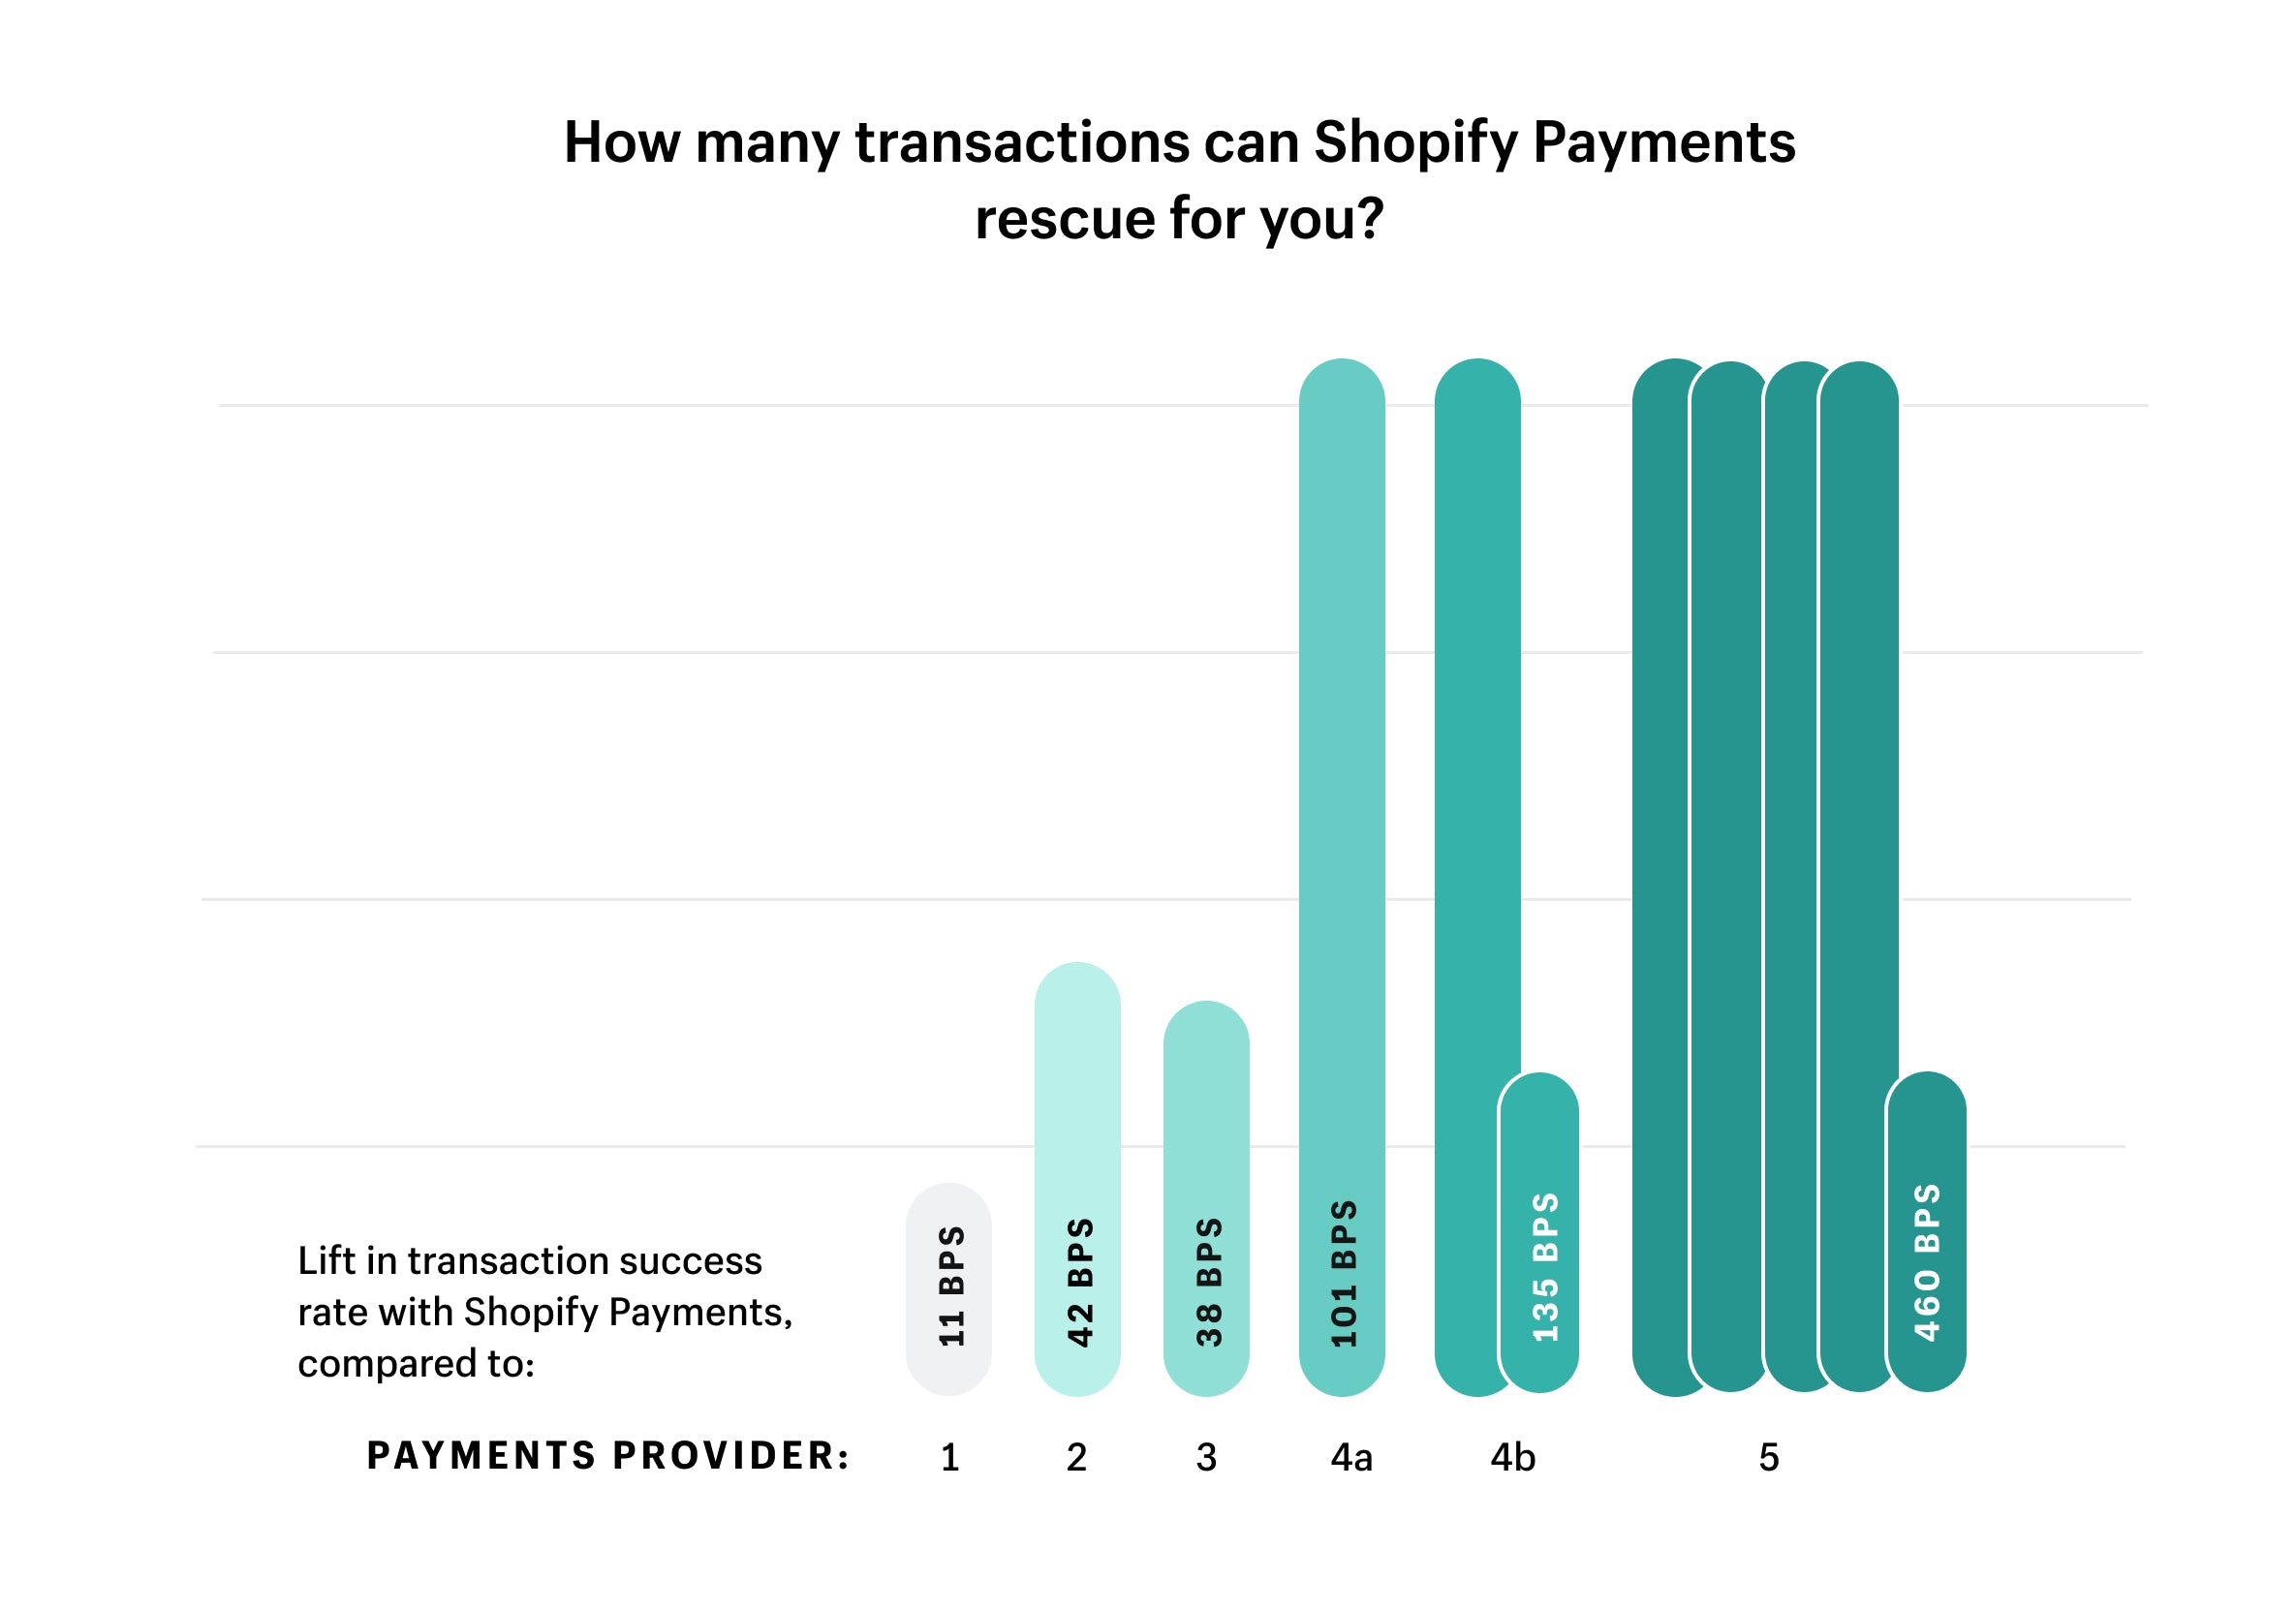 Save more transactions with Shopify Payments.